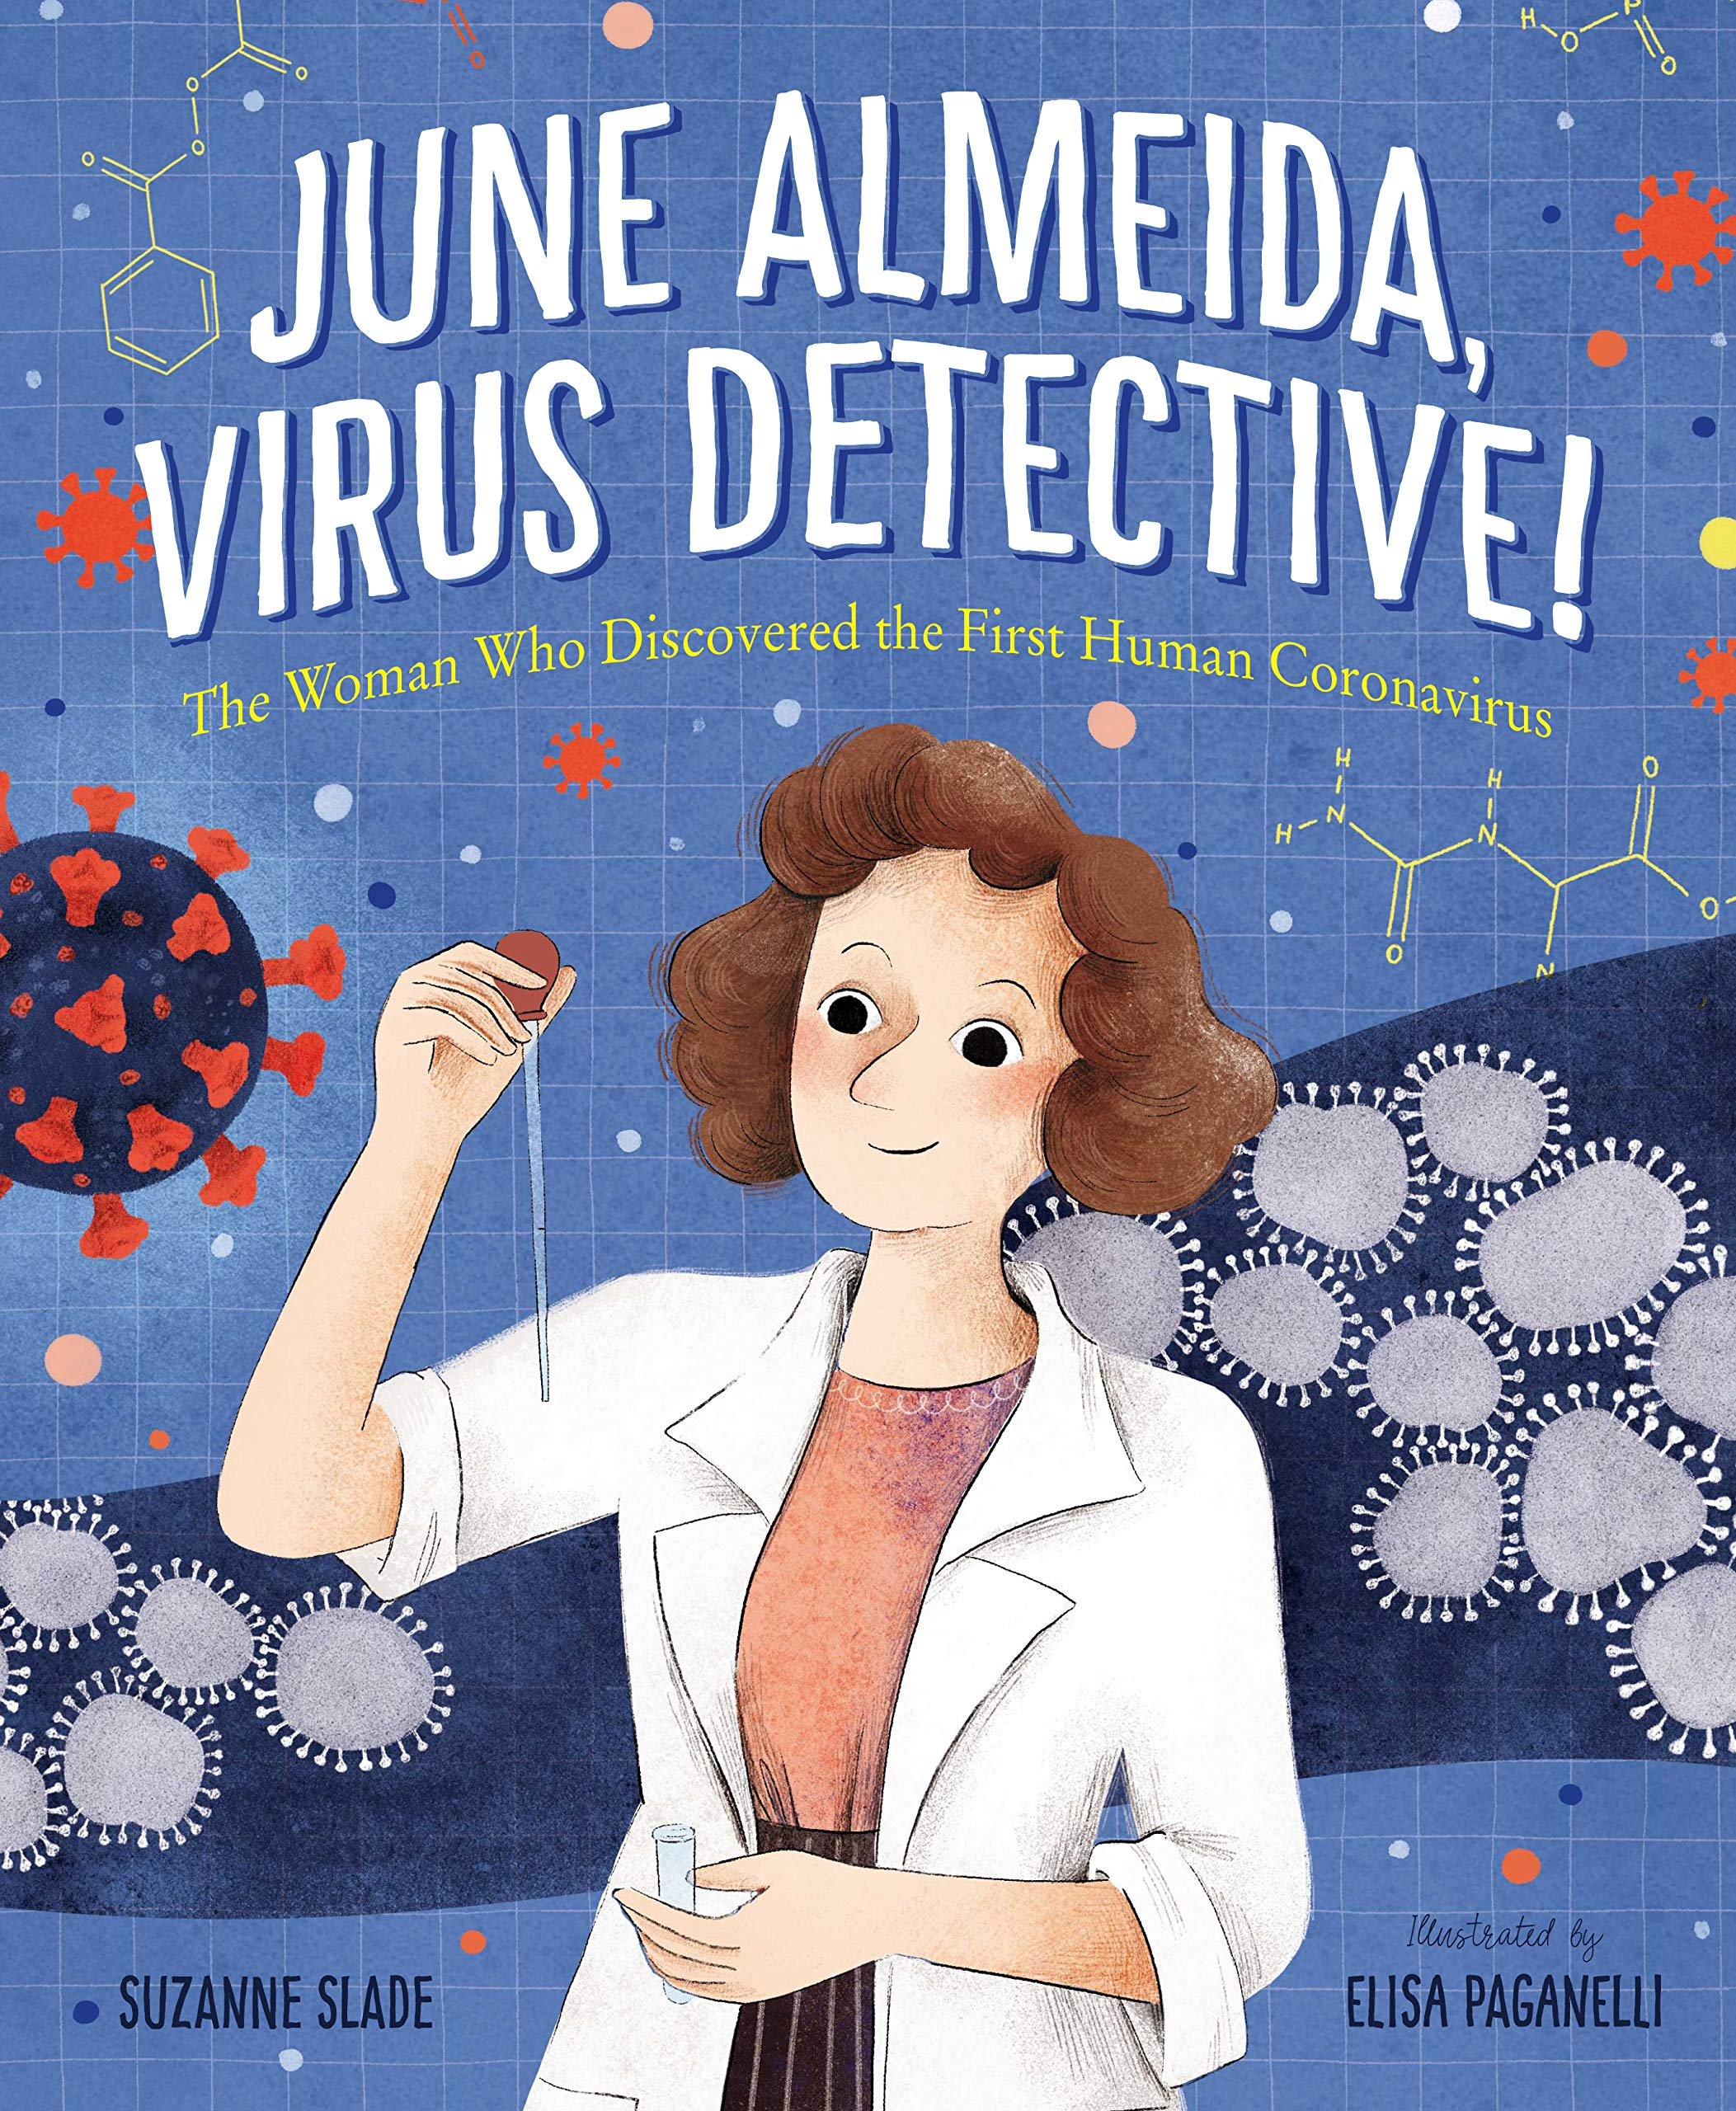 June Almeida, Virus Detective! The Woman Who Discovered the First Human Coronavirus